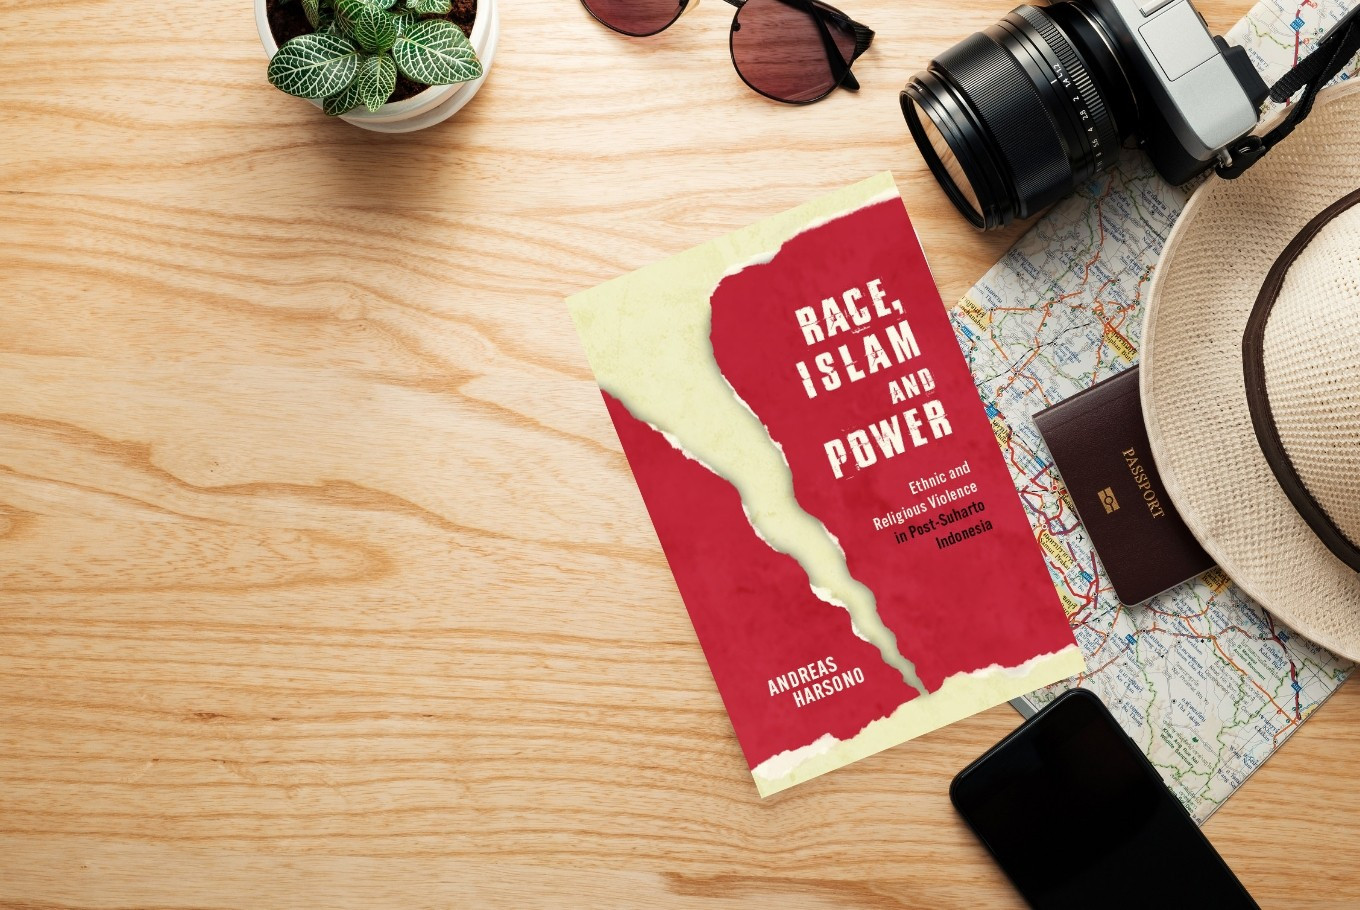 'Race, Islam and Power' set to launch ahead of 2019 presidential election